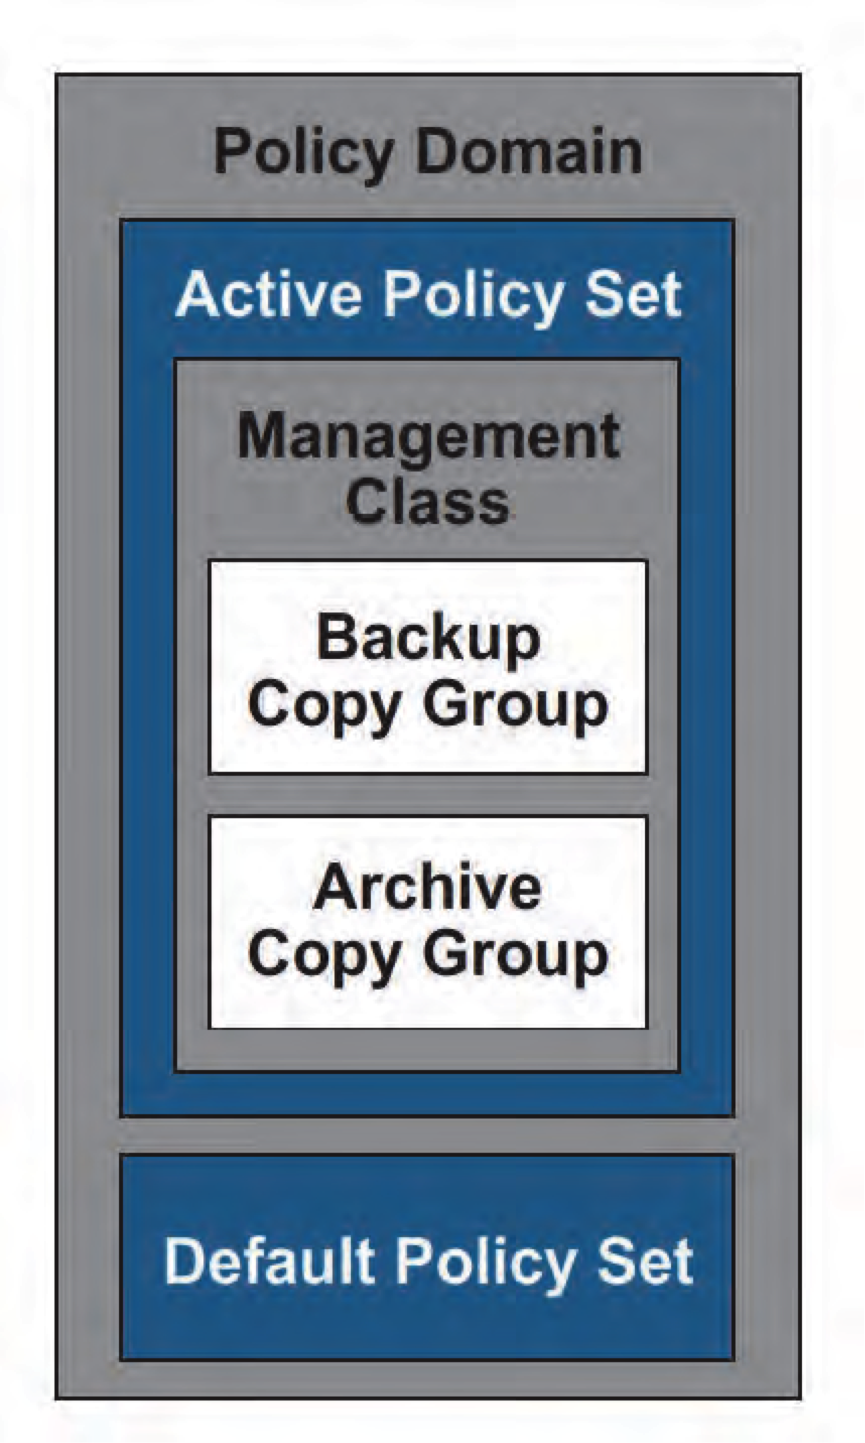 Tivoli Storage Manager Policy Structure